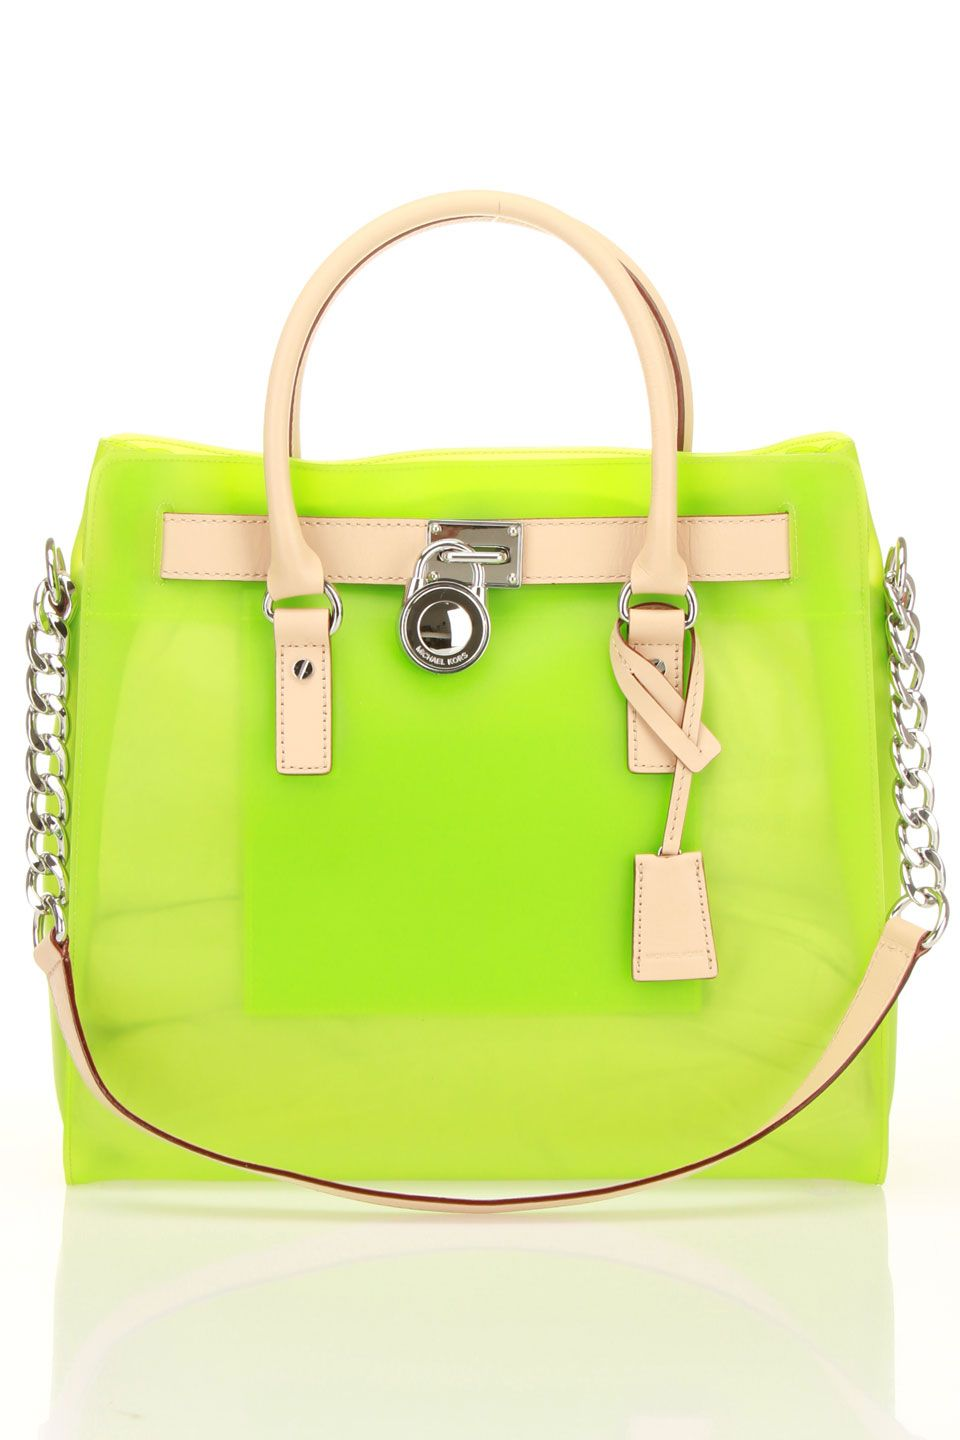 MK Jelly Tote in Neon Green | michael kors purses | Pinterest ...